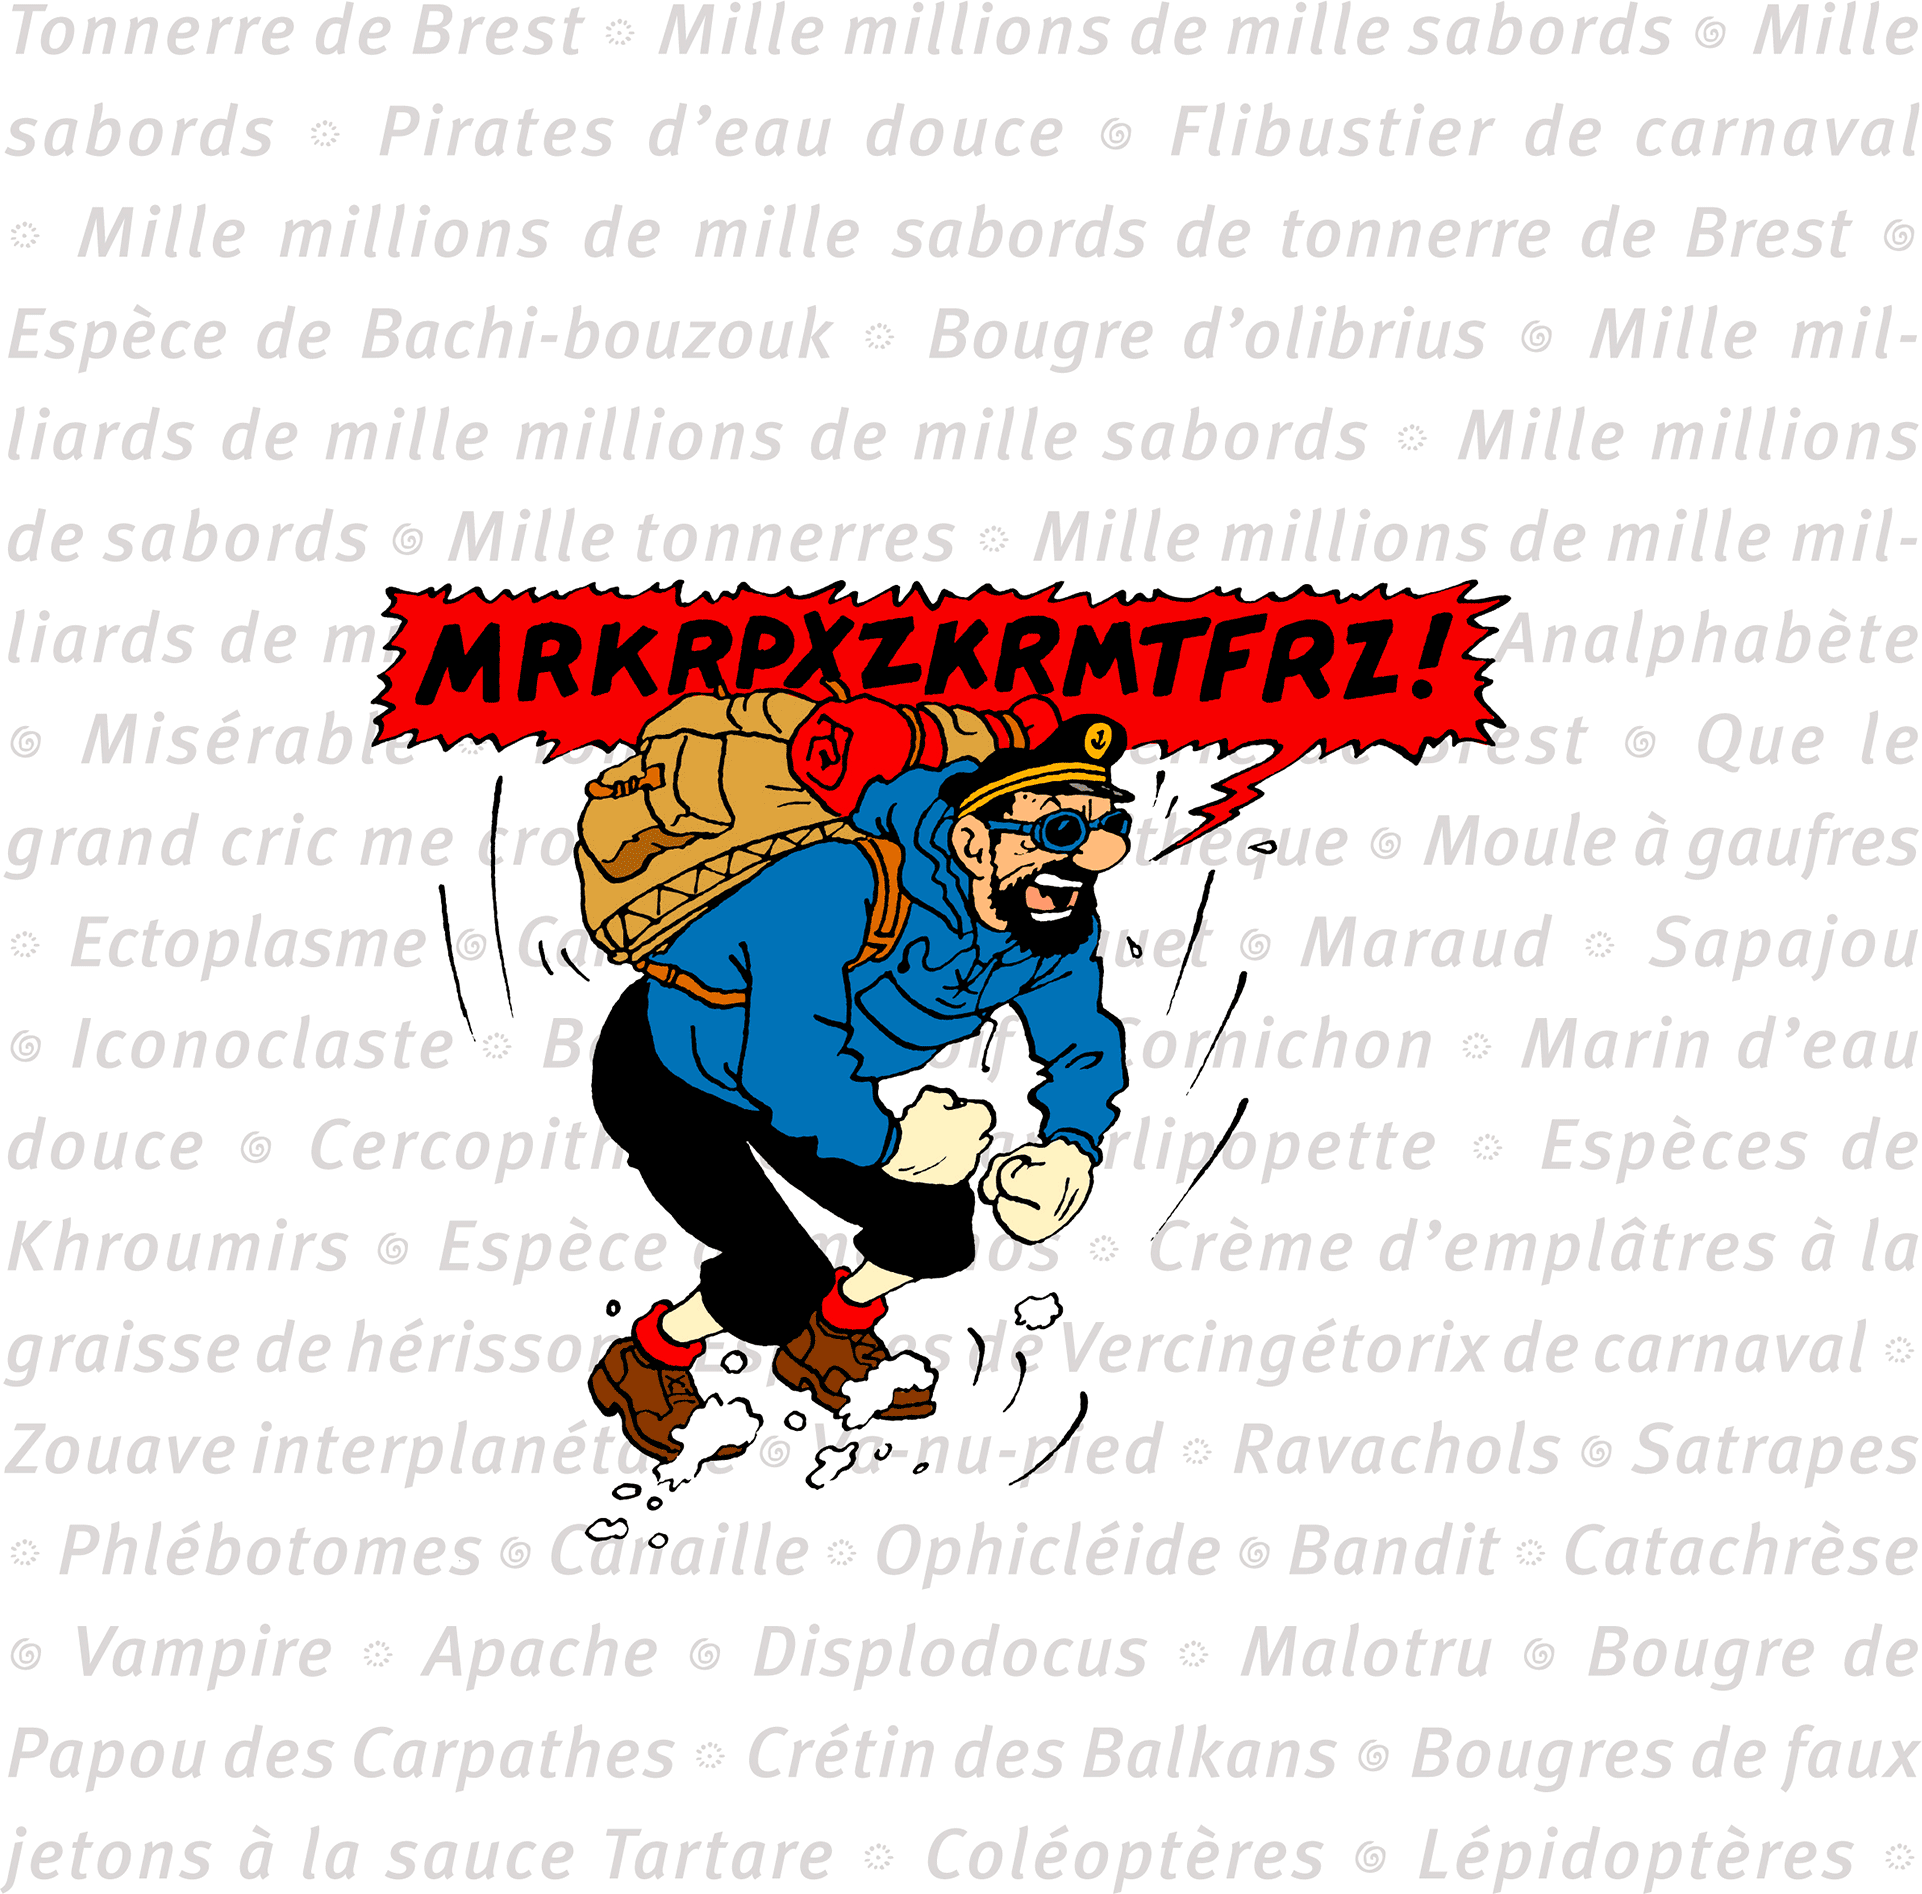 Captain Haddock expletives